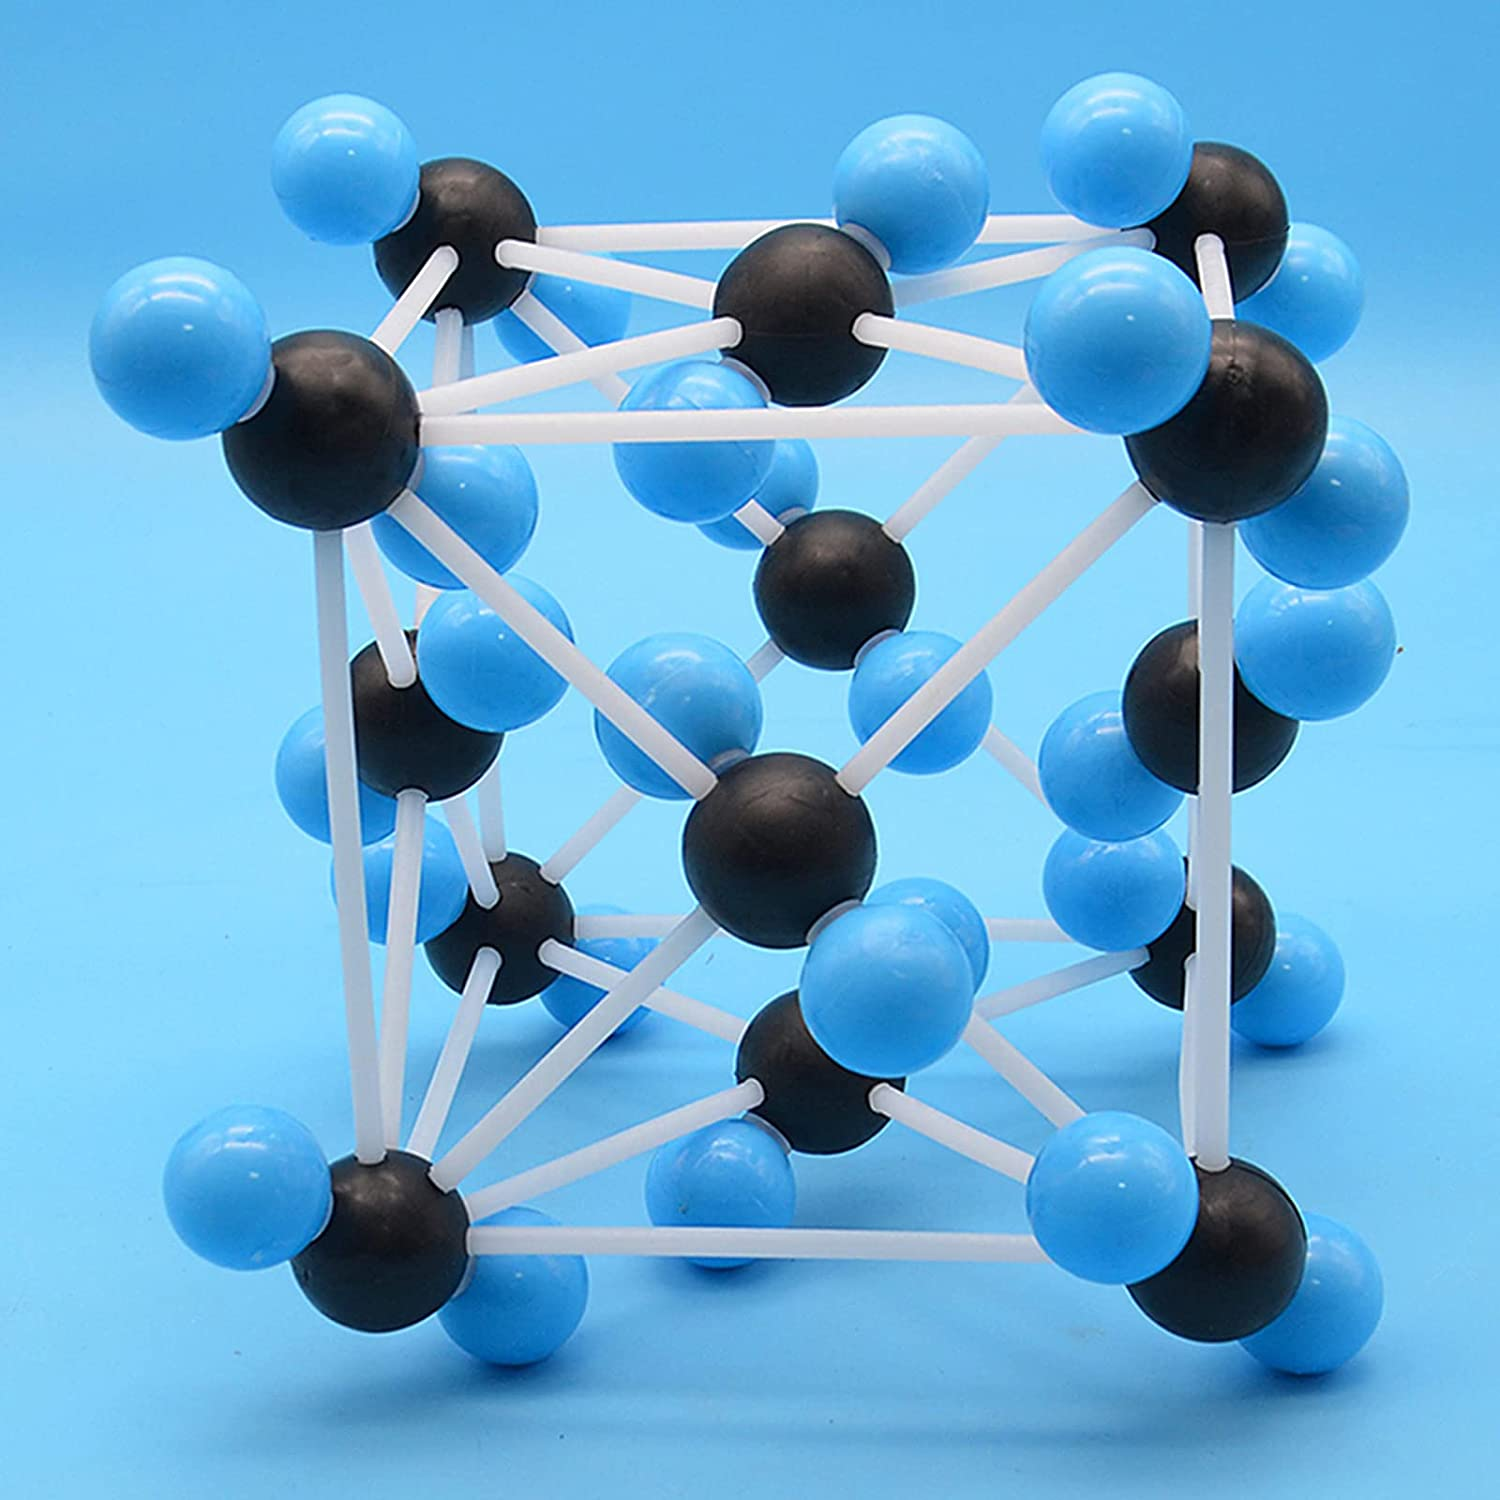 YZILXY Super Special SALE held Carbon Dioxide Crystal NEW before selling - Model Molecular Structure